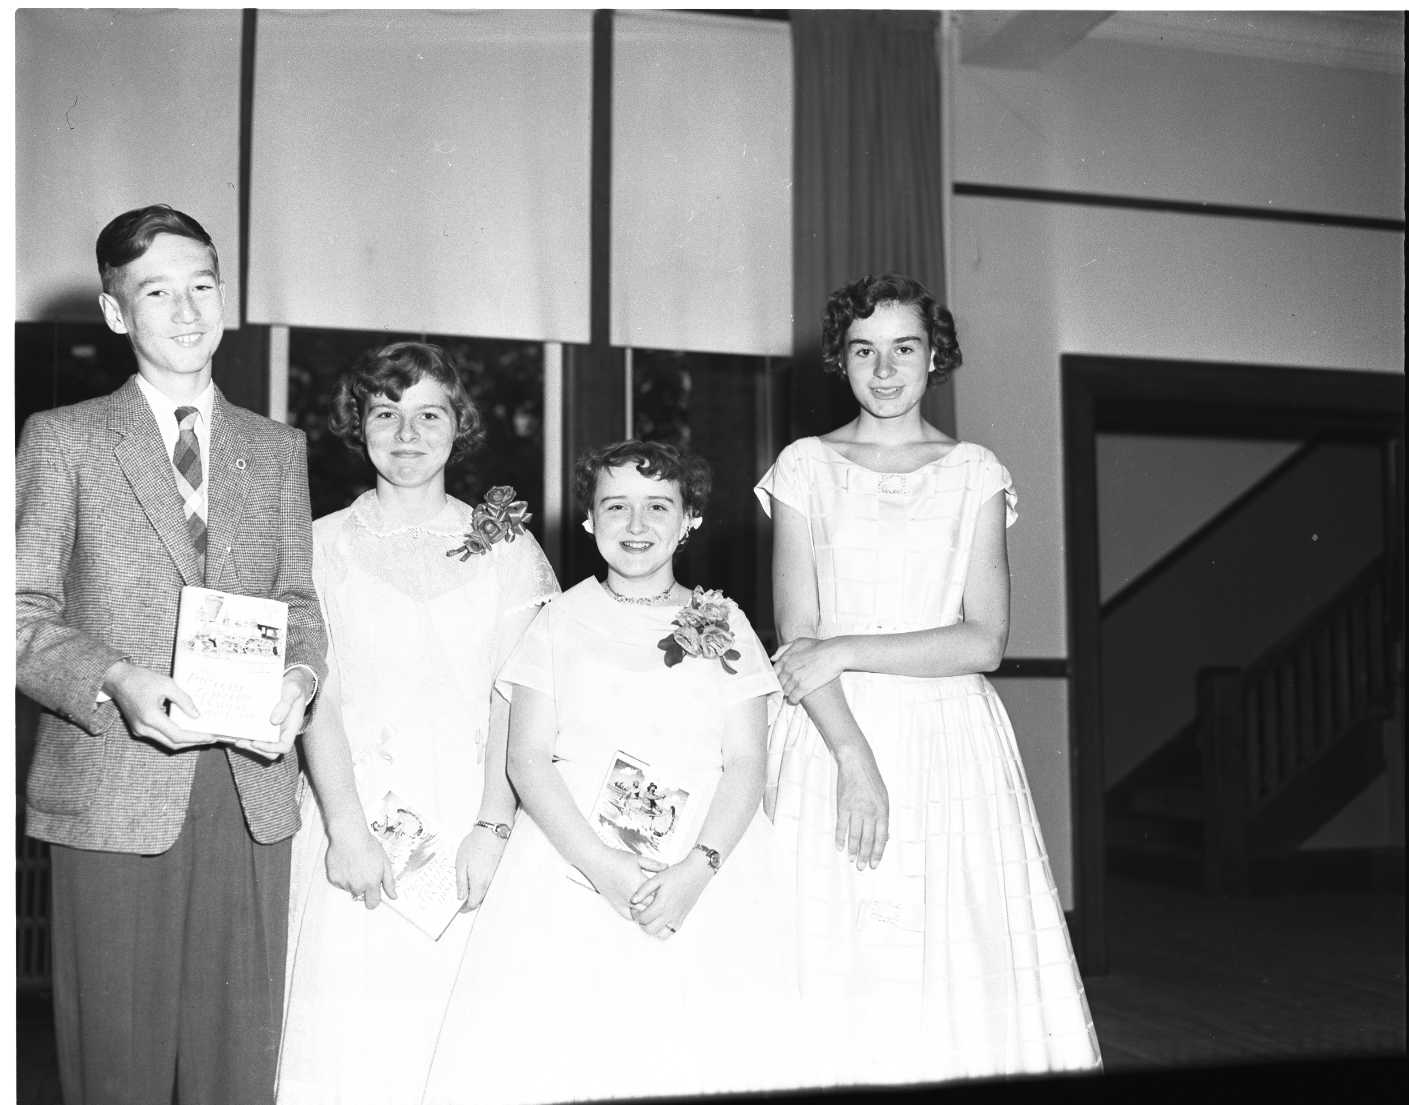 Jacques schell photographe synthesis of all pictures from www - Four Winners Of Awards For Proficiency In Social Studies Are Pictured At Public School Graduation Ceremonies At Parkview School They Are Winston Schell